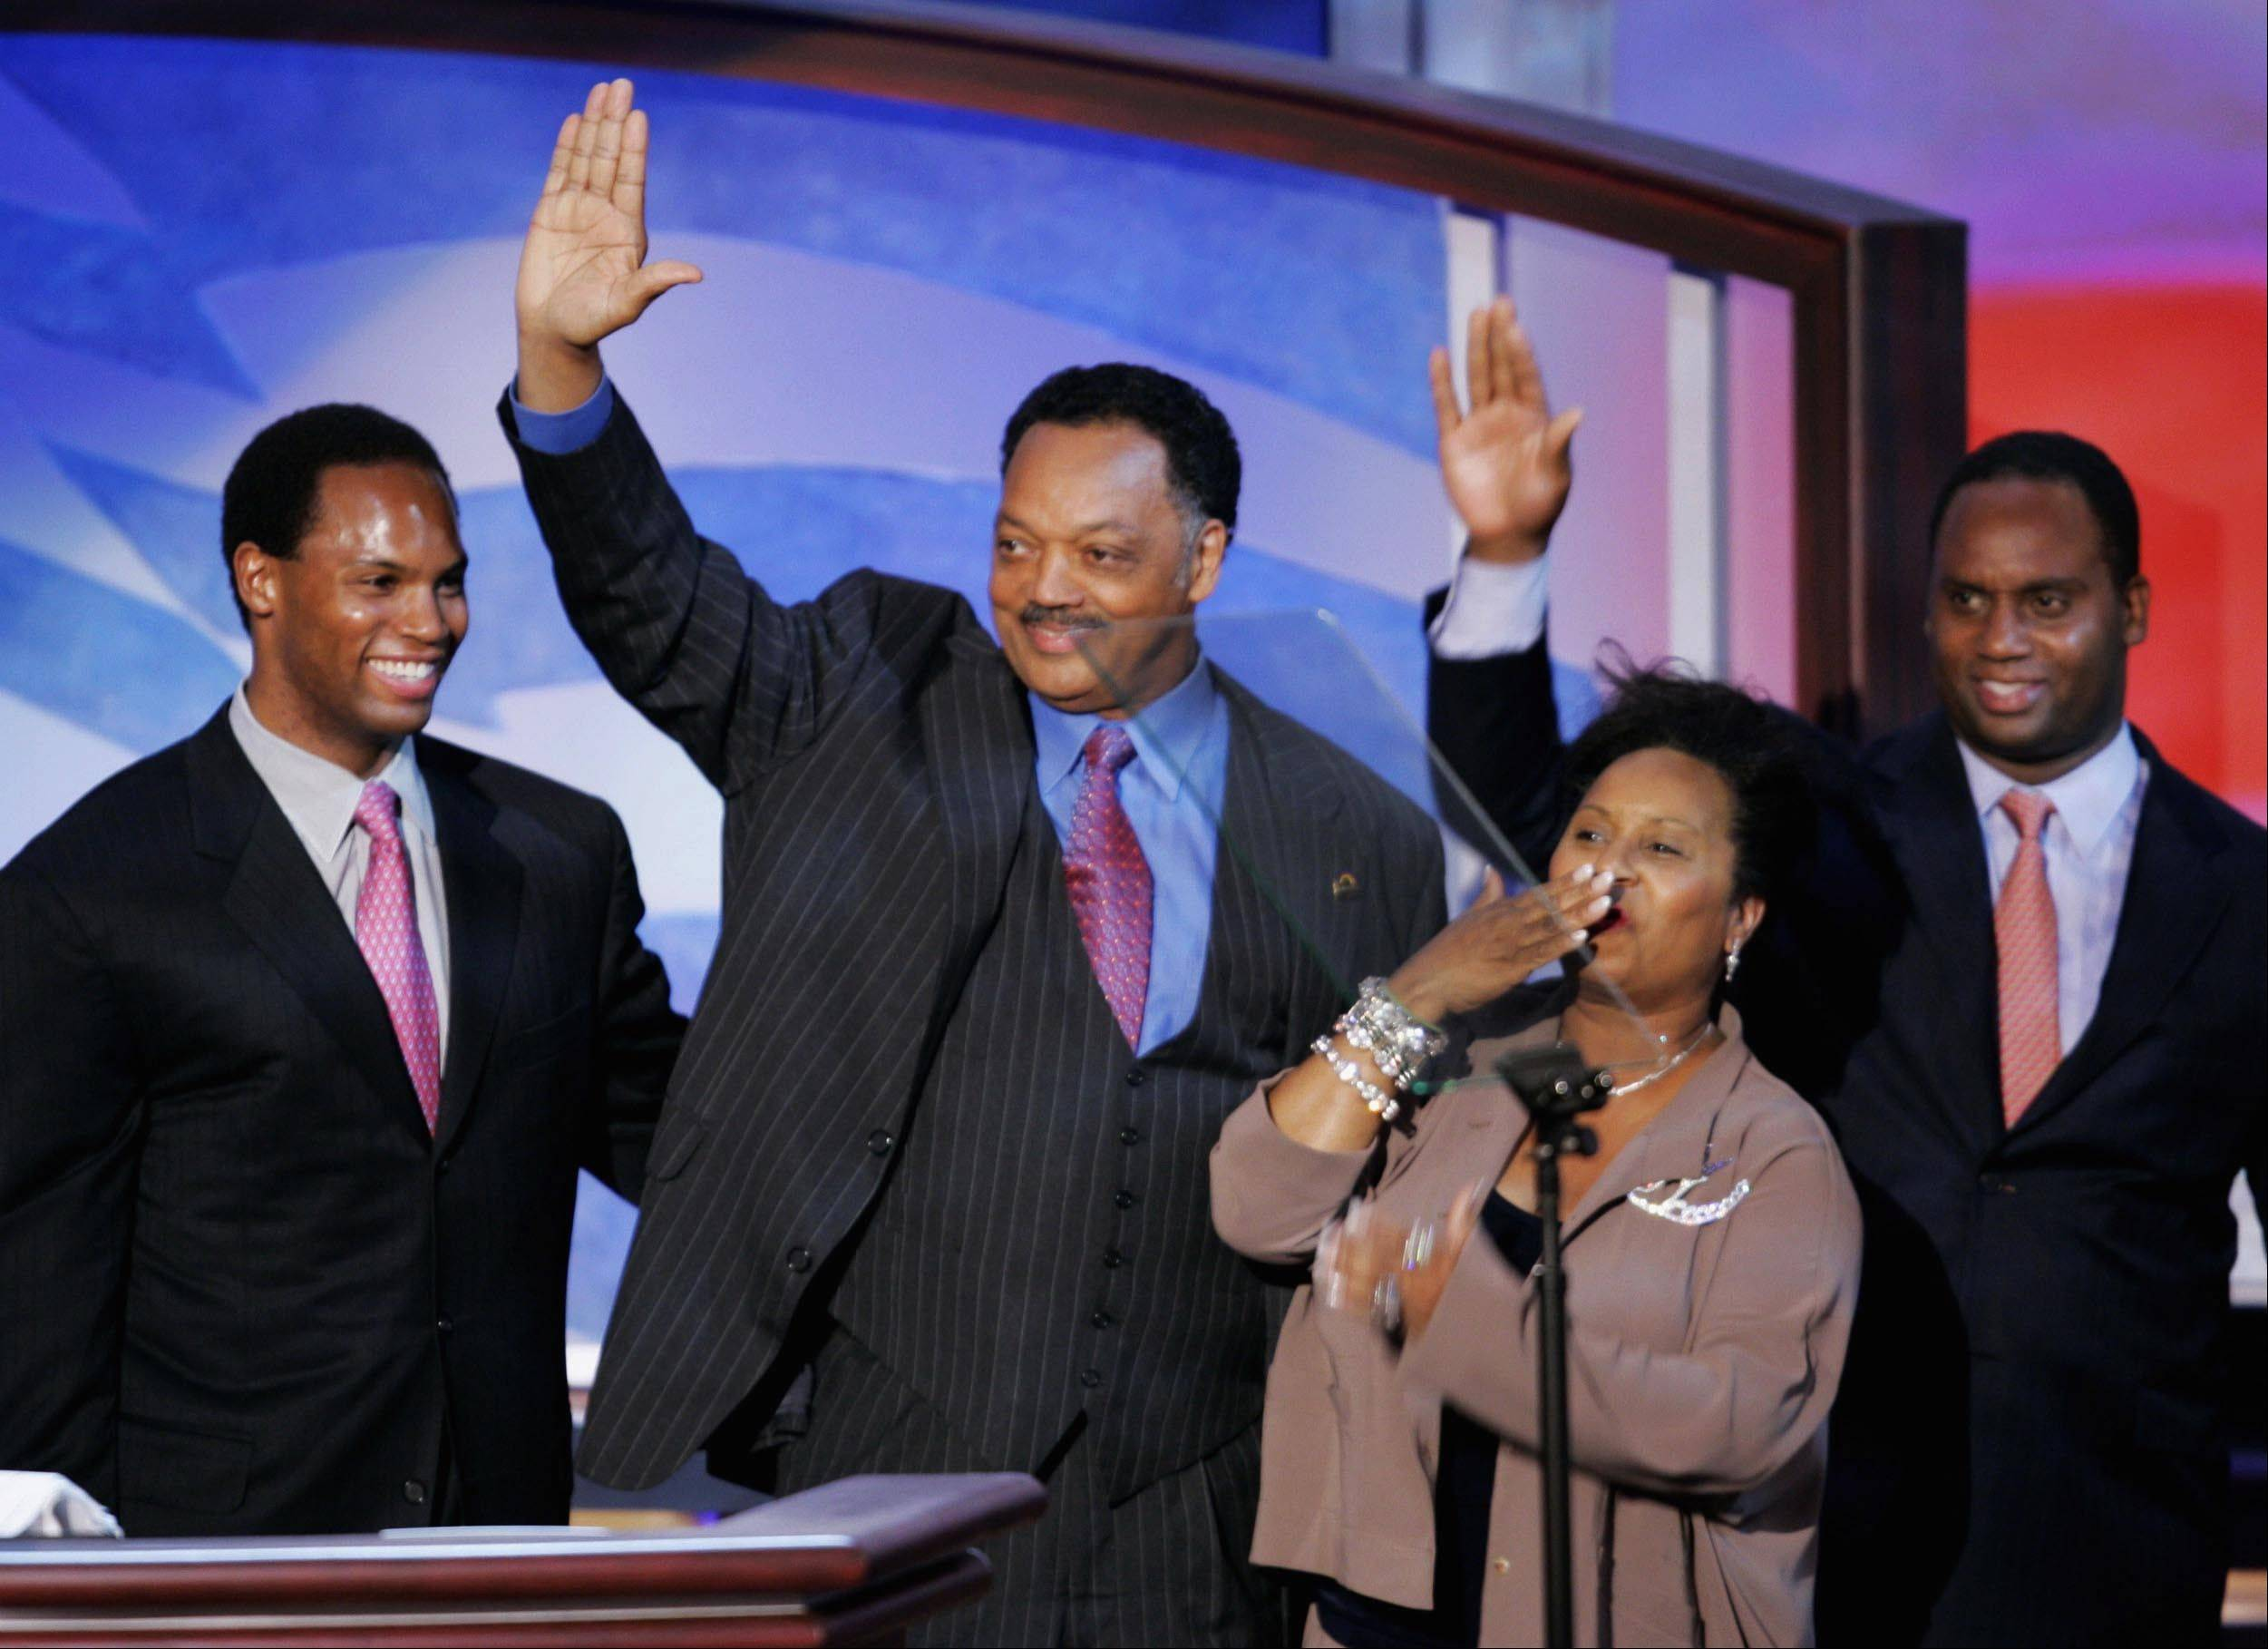 The Rev. Jesse Jackson is joined by his wife, Jacqueline, and sons Yusef, left, and Jonathan after he addressed the delegates to the 2004 Democratic National Convention in Boston.